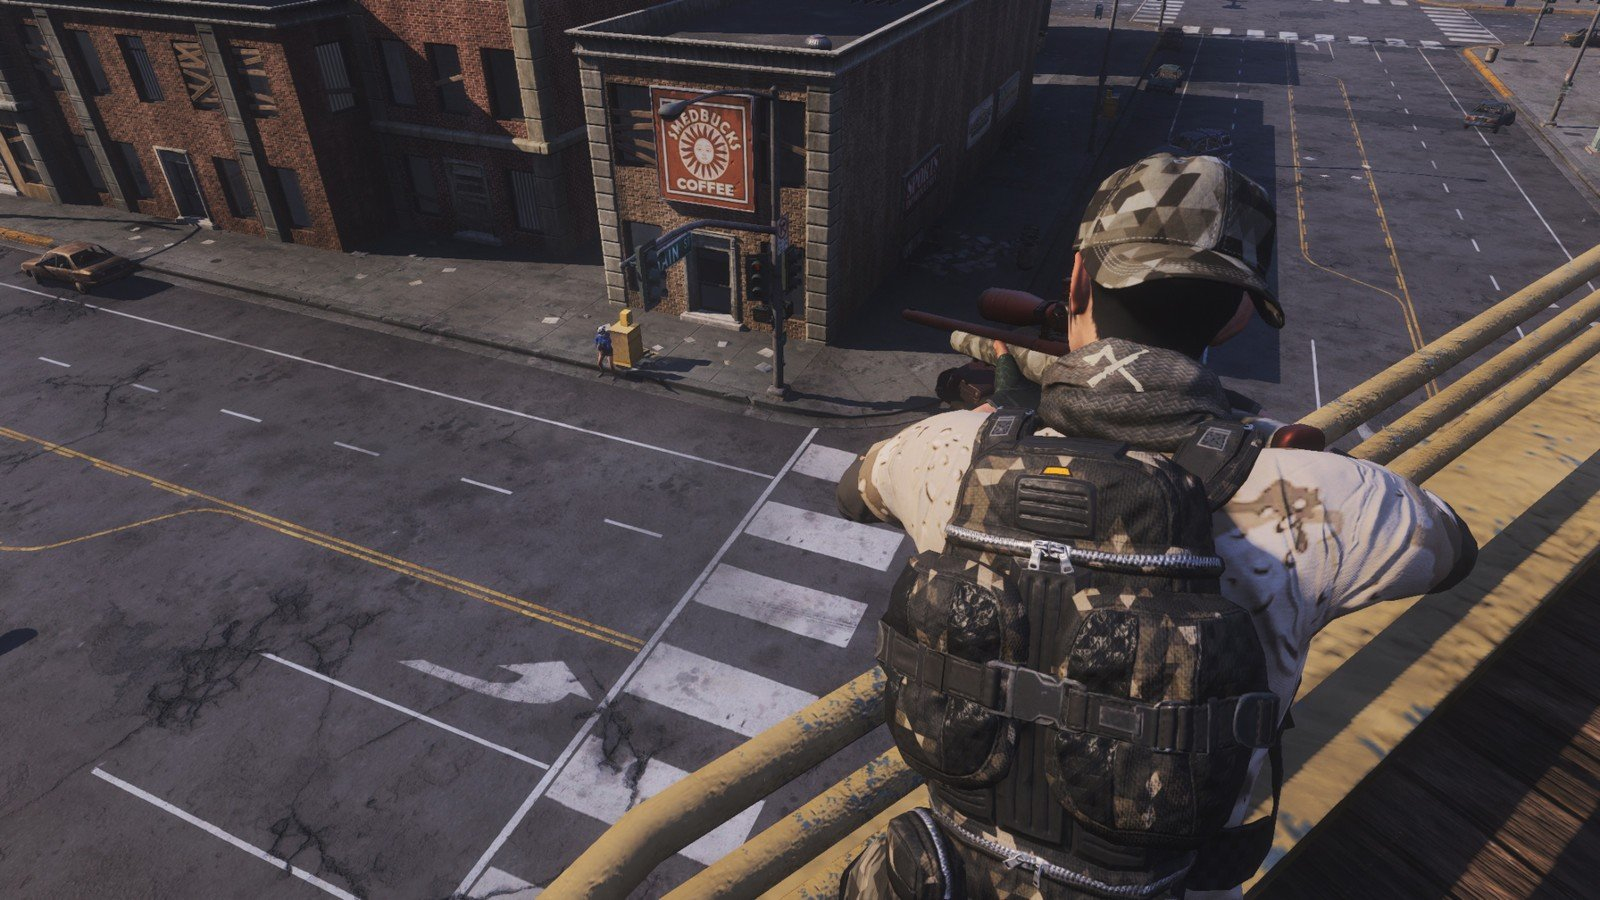 H1Z1: Battle Royale gets 2 new modes, Battle Pass, and more